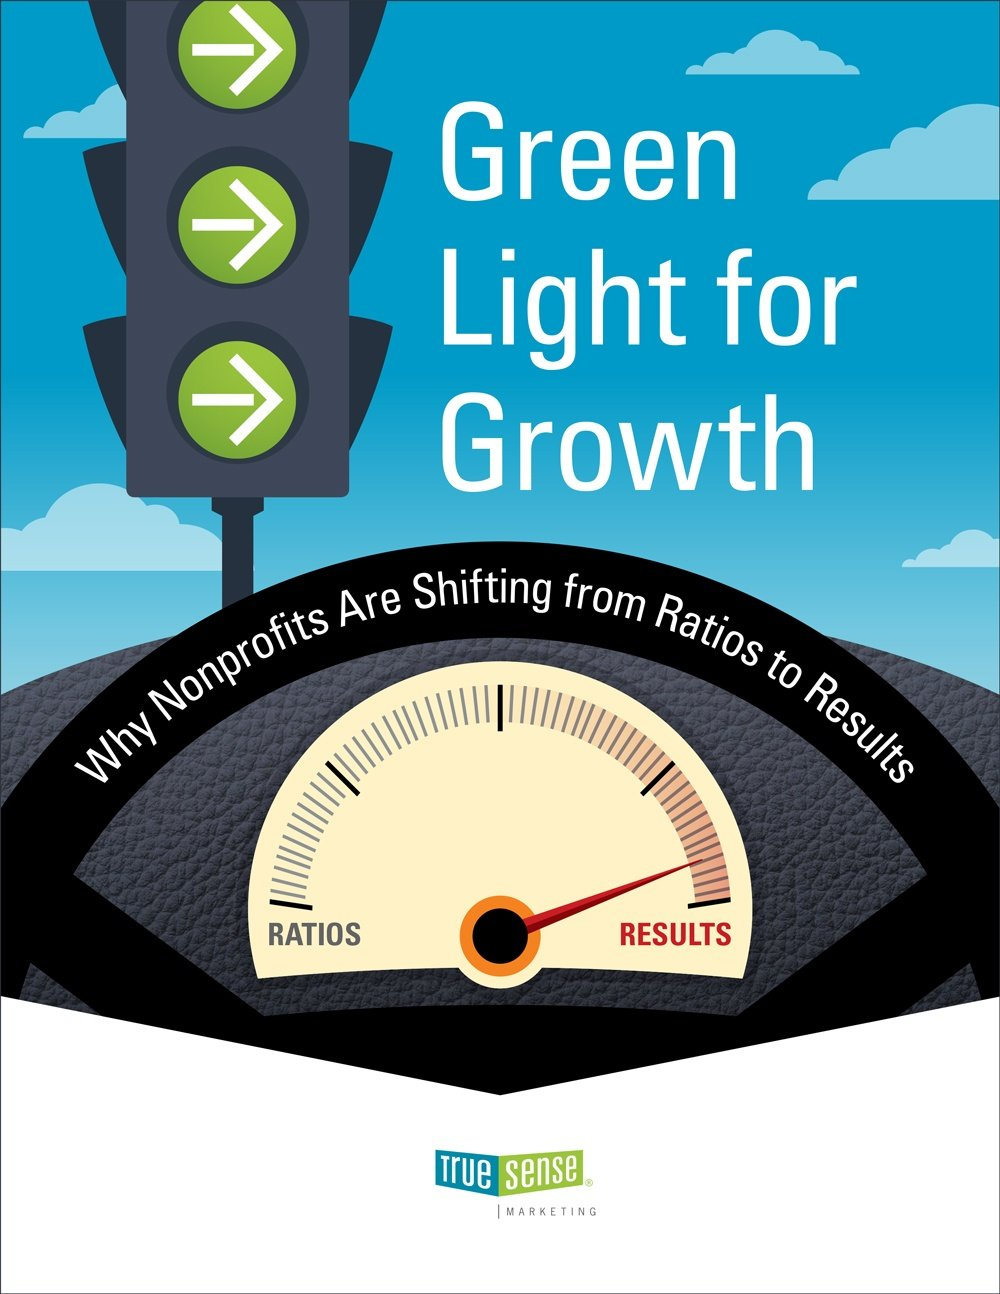 Green-Light-for-Growth-cost-ratios.jpg